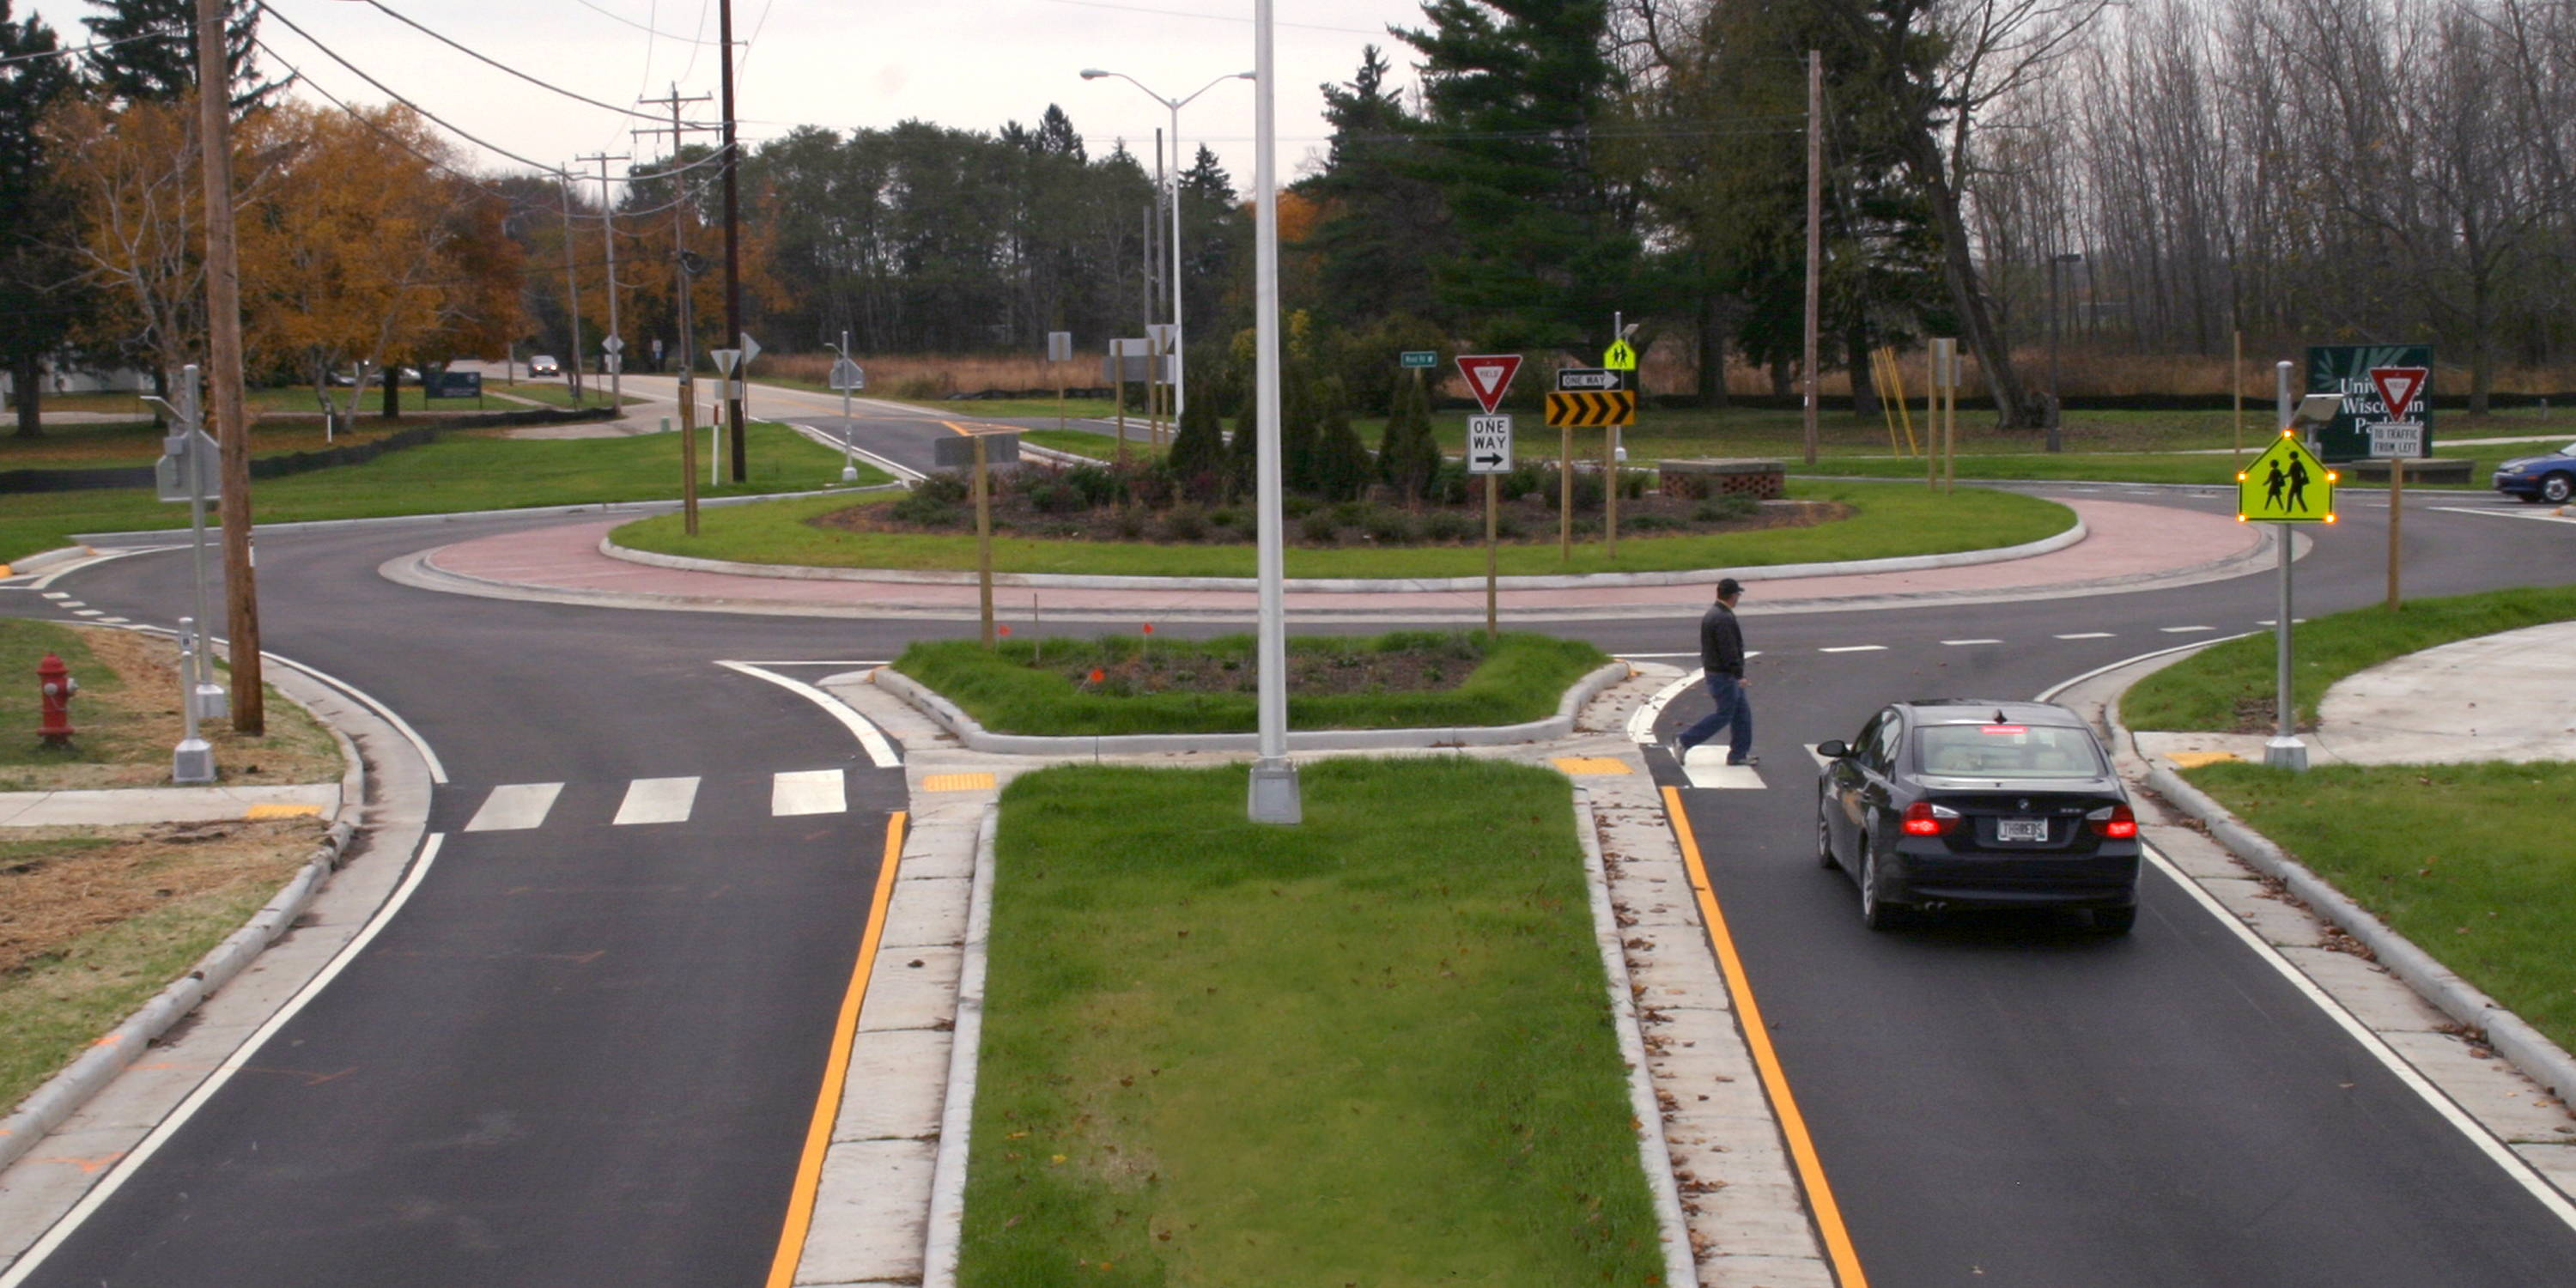 Blinkersign used at roundabout to increase crosswalk safety